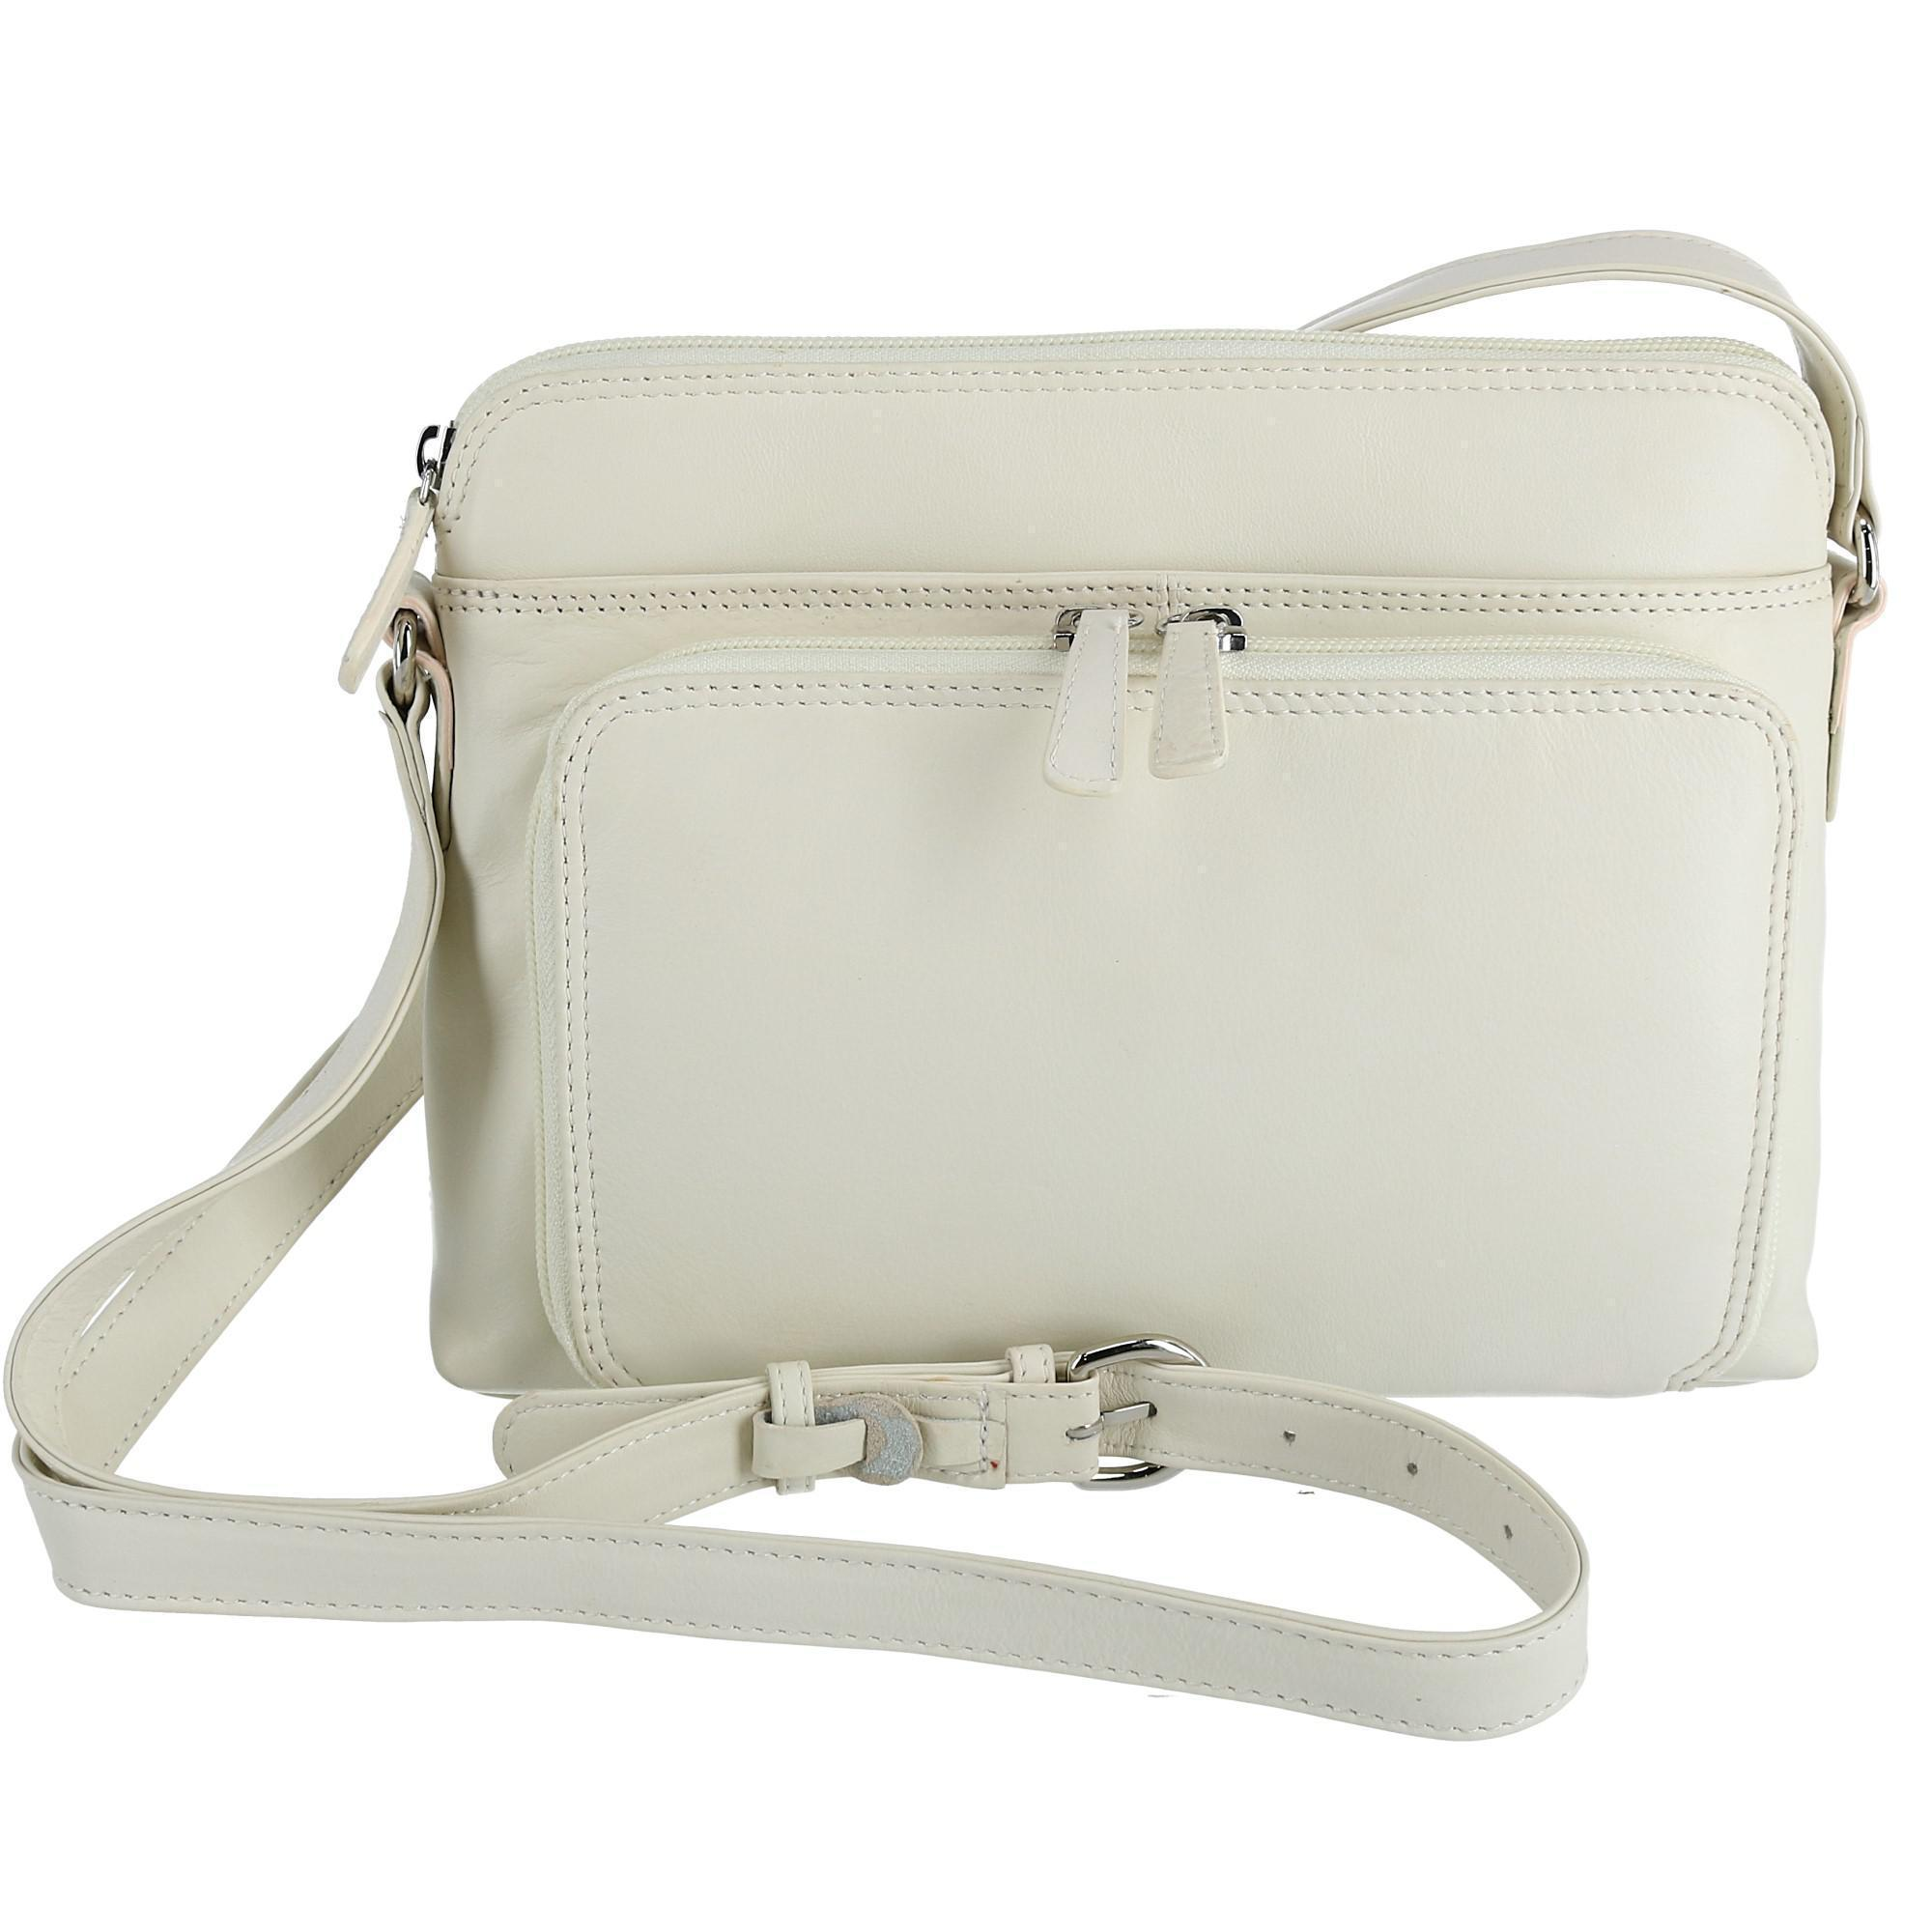 CTM Women's Leather Shoulder Bag Purse with Side Organizer - Bone one (IL-6333-IVO IL-6333) photo